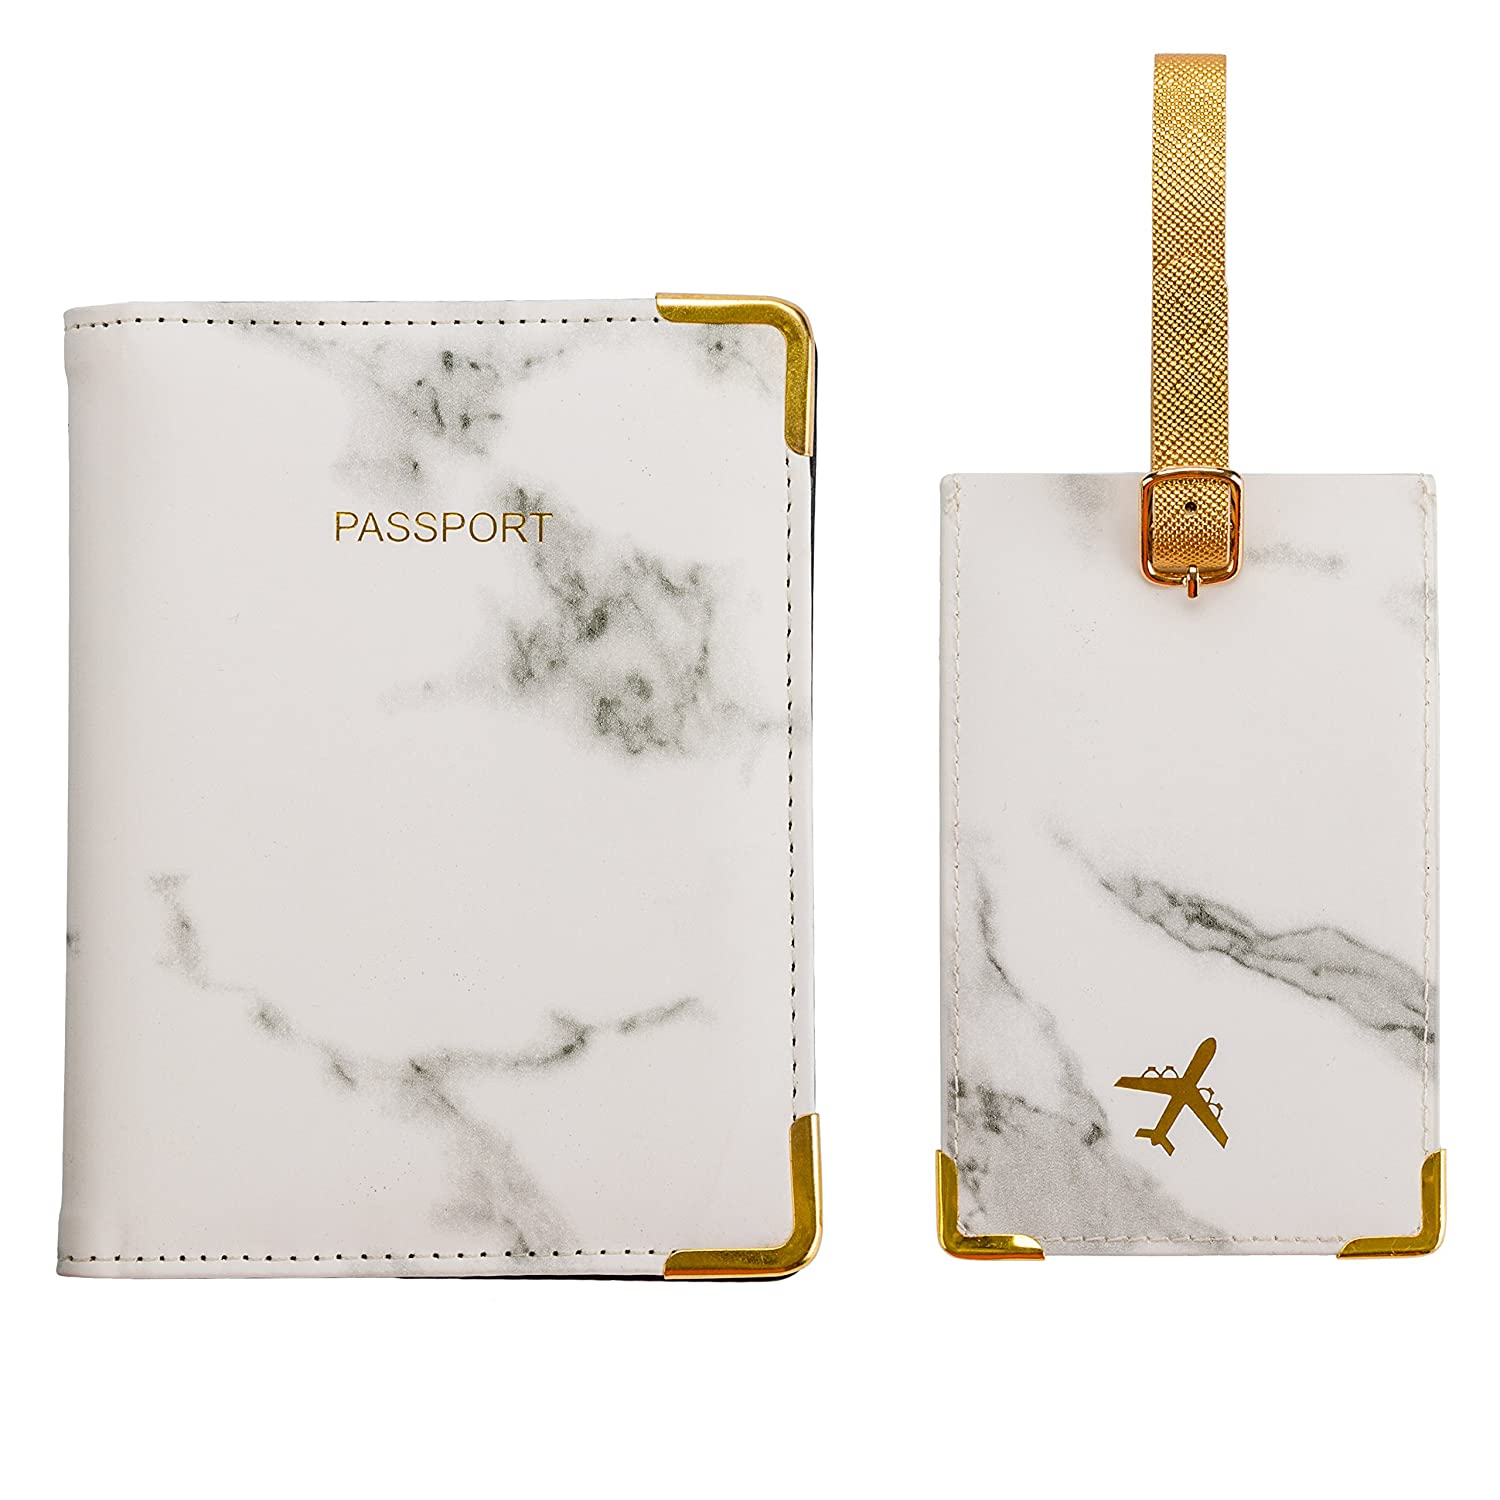 White Marble Passport Holder RFID Blocking Cover Wallet & Luggage tag, Travel Accessories Organizer